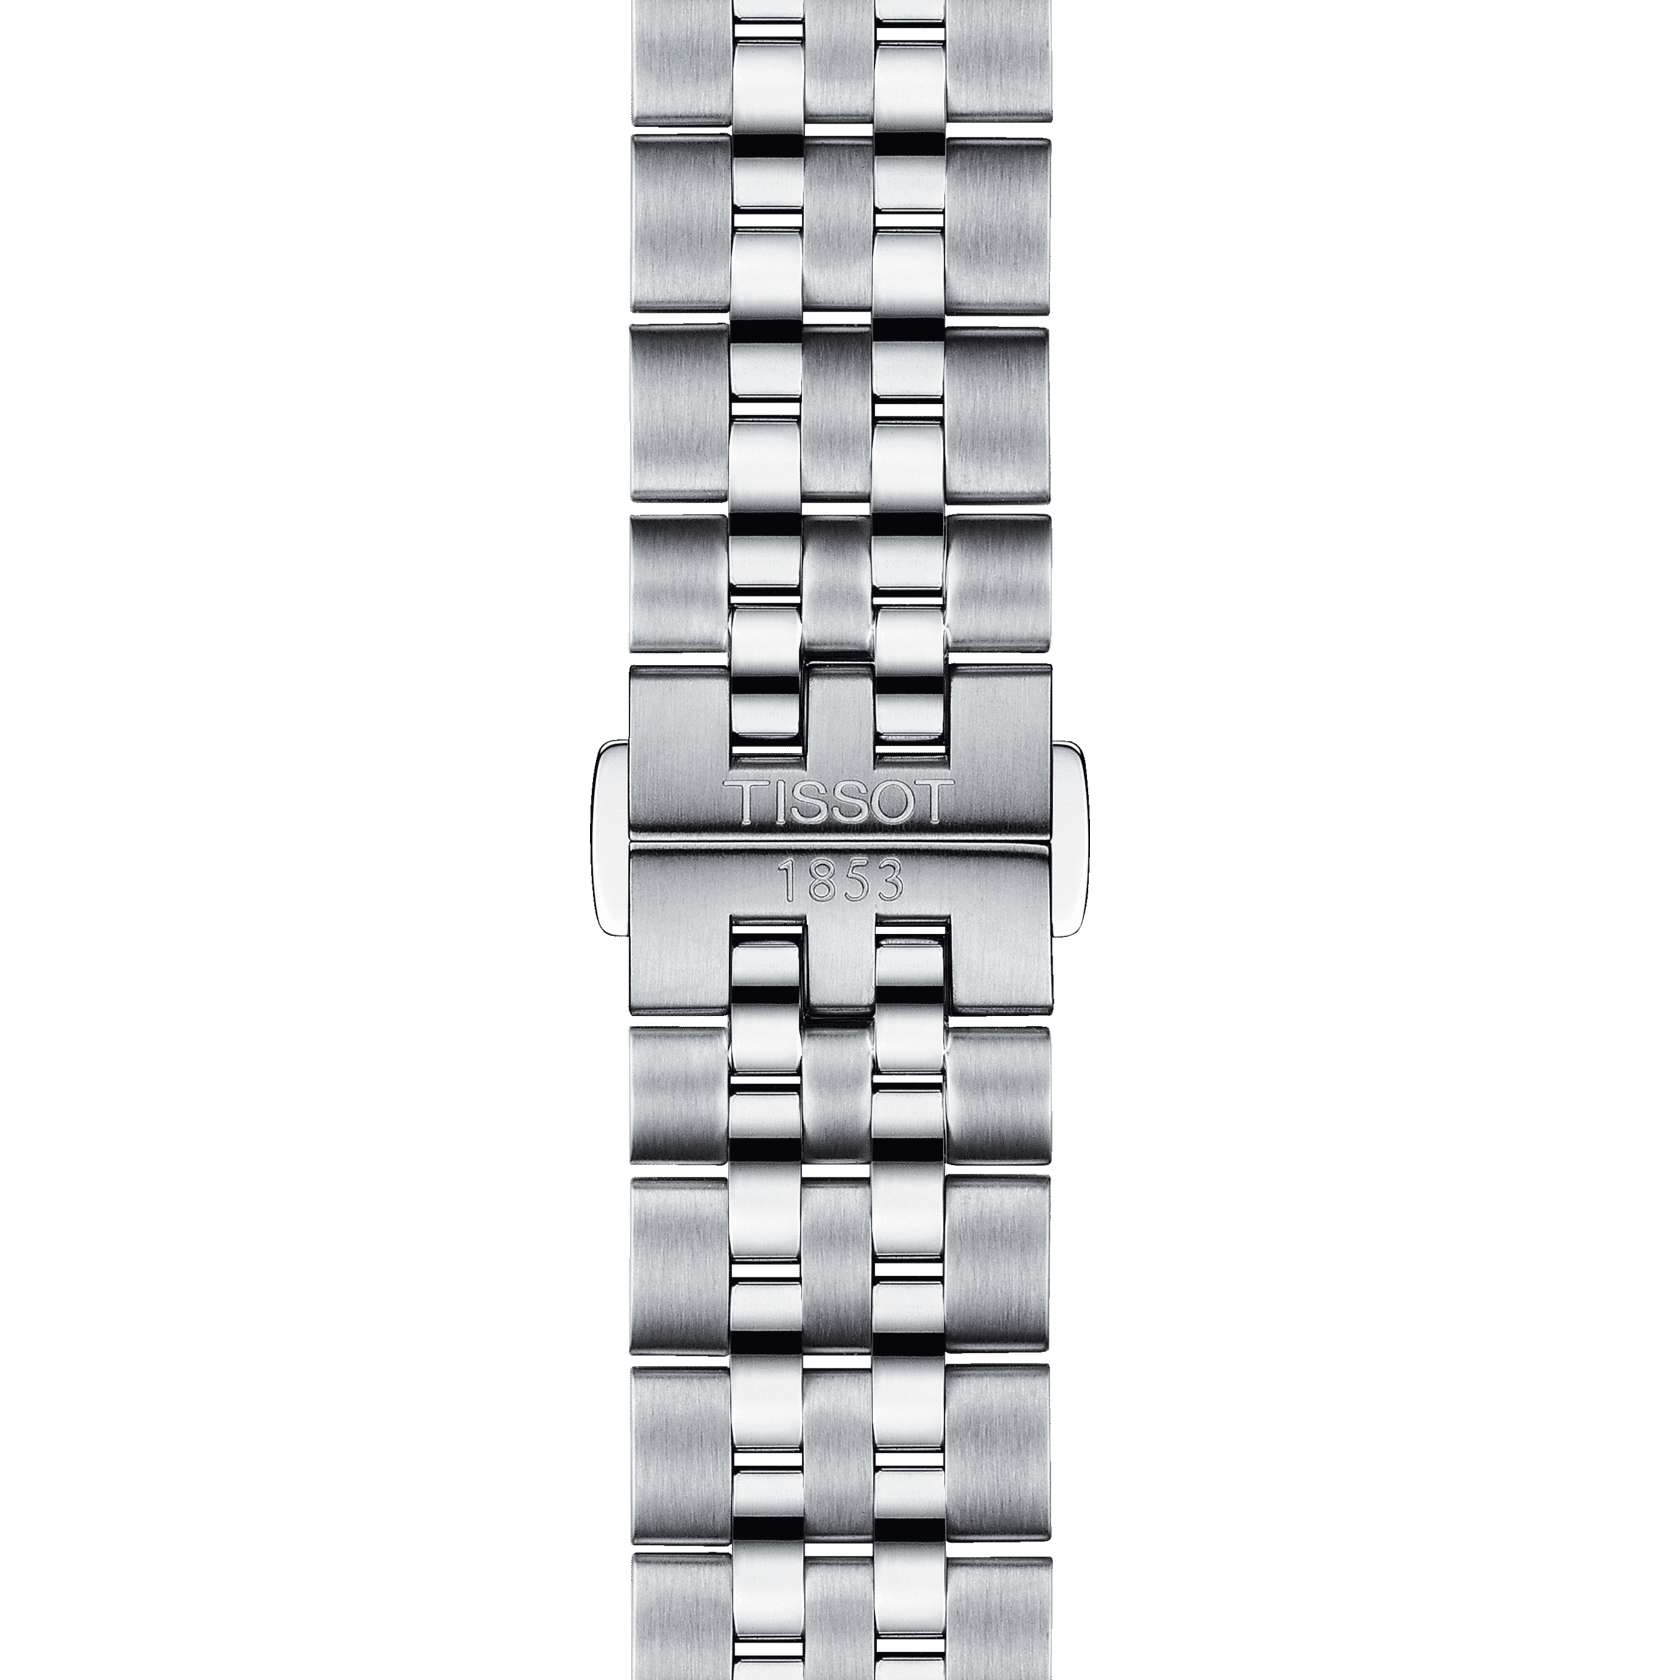 Dhgate Replica Rolex Watches